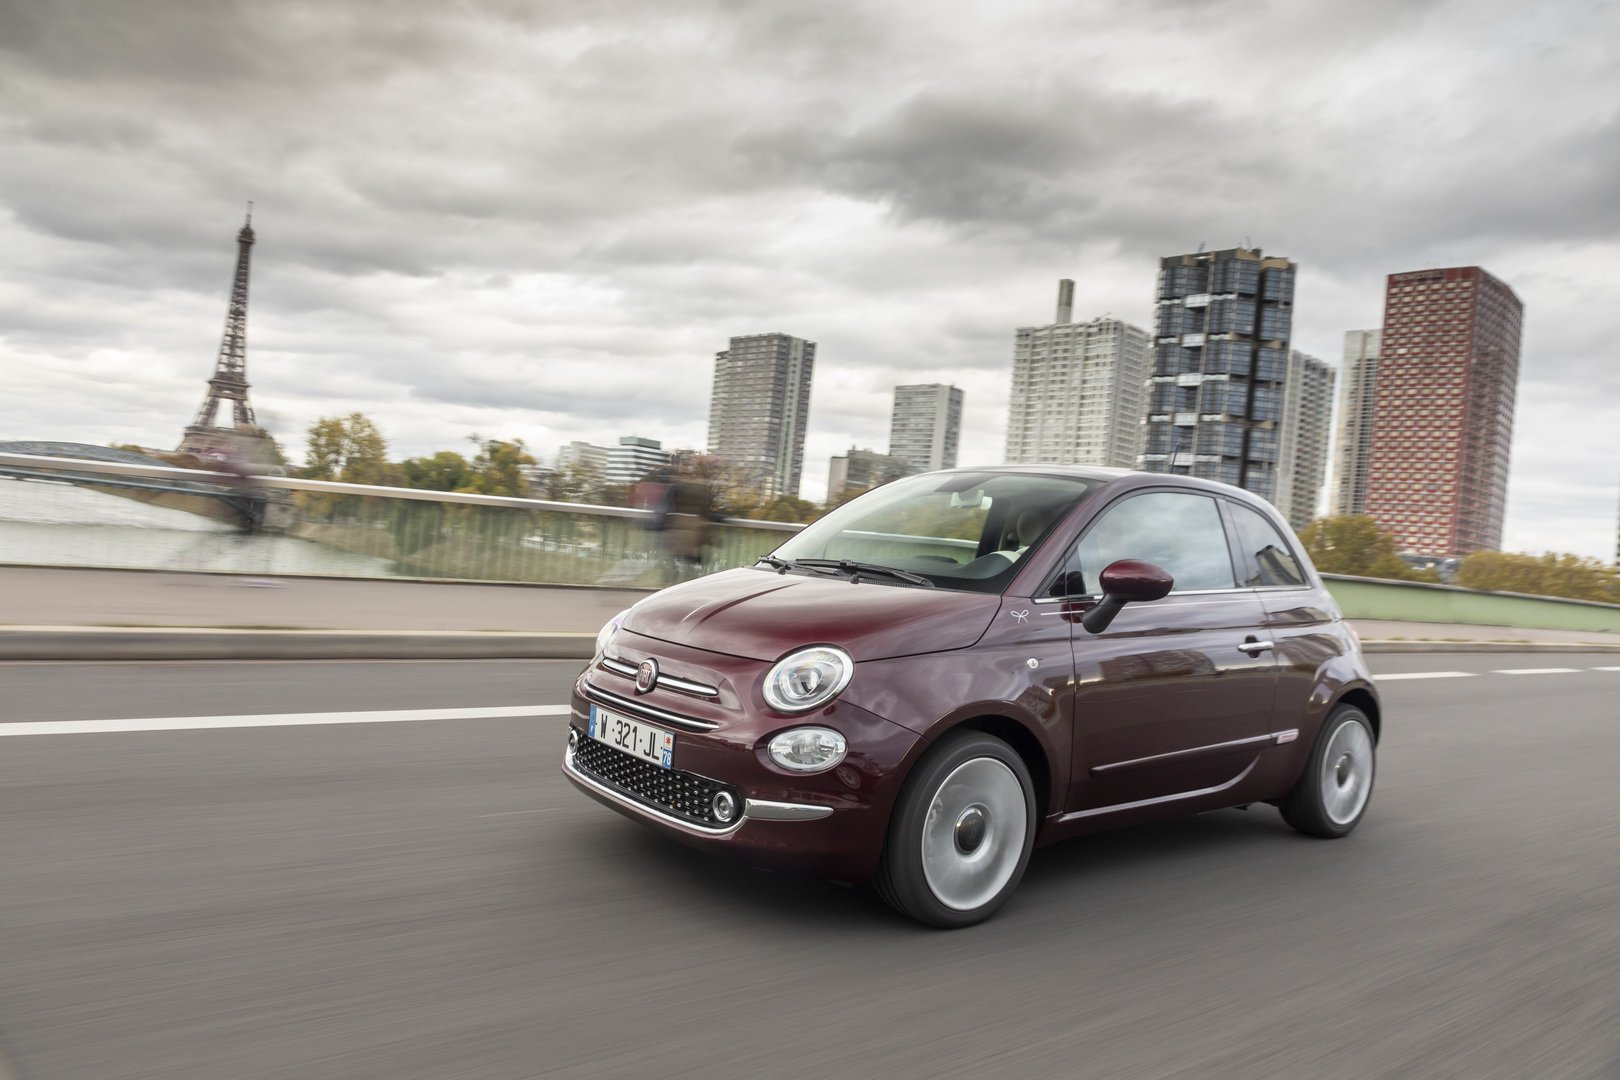 Fiat Reveals Yet Another Special Edition Designed In Collaboration